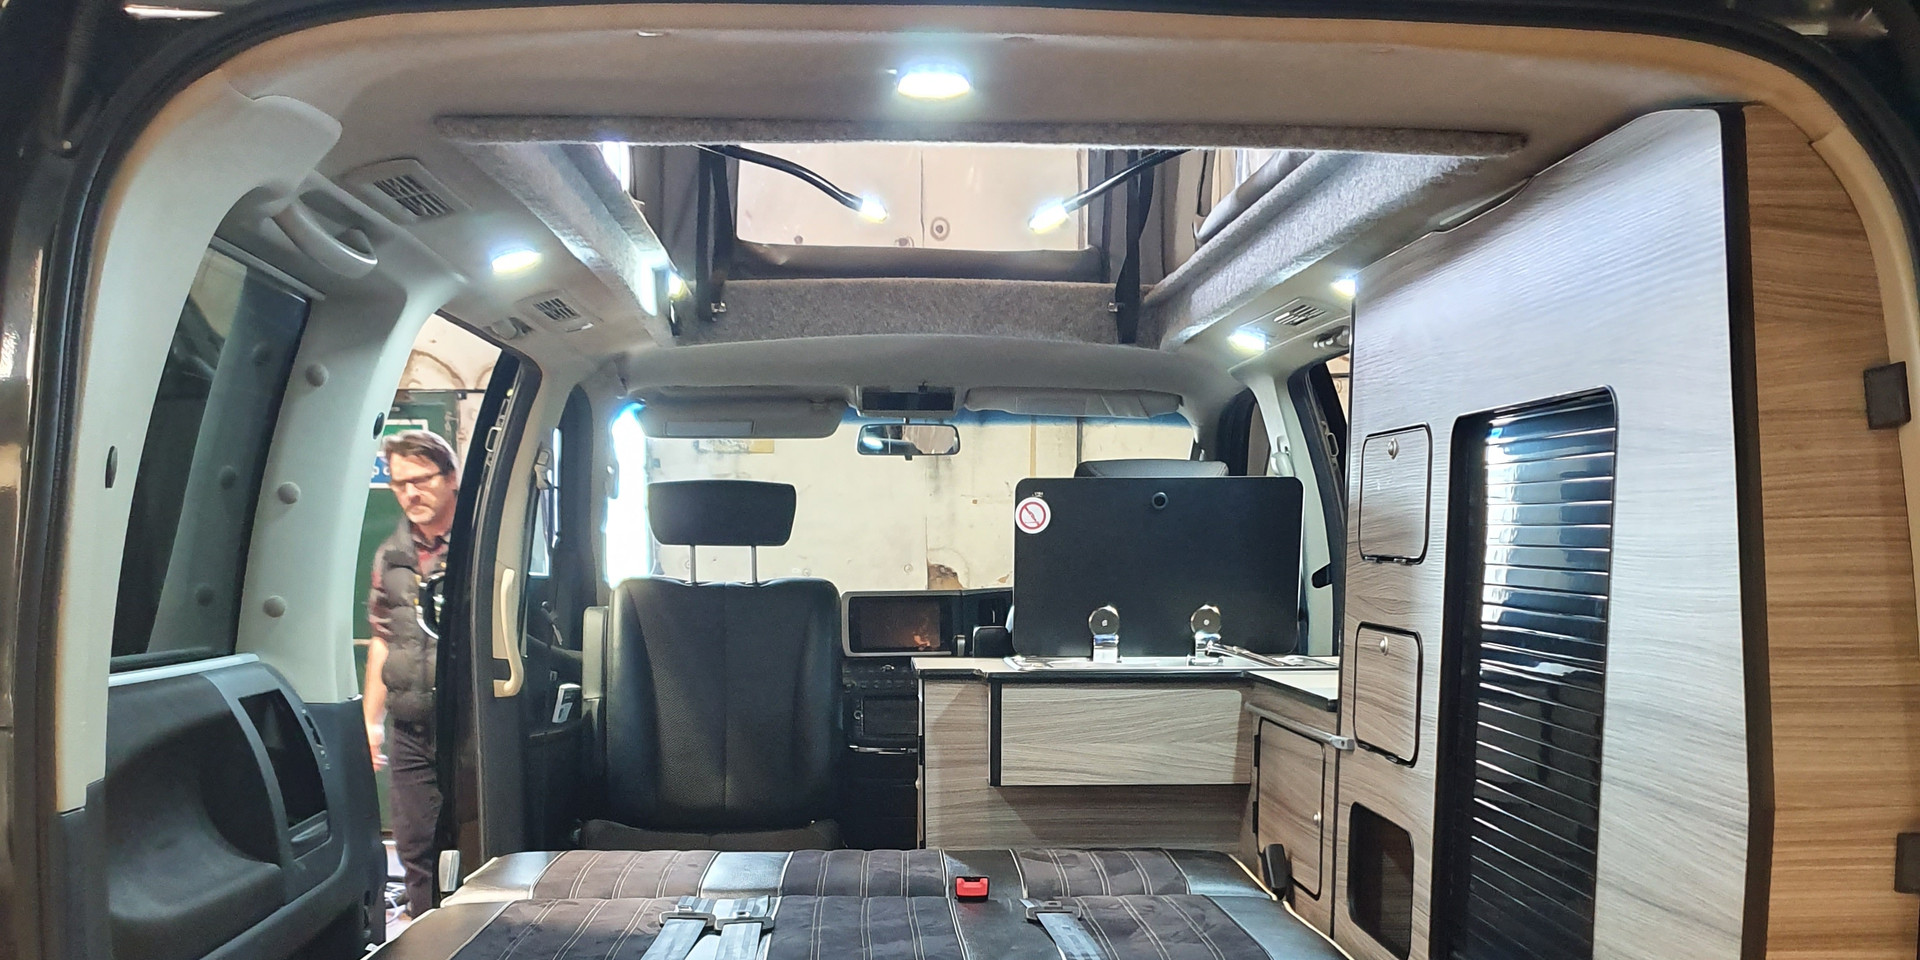 48 RR Side Conversion - Nissan Elgrand